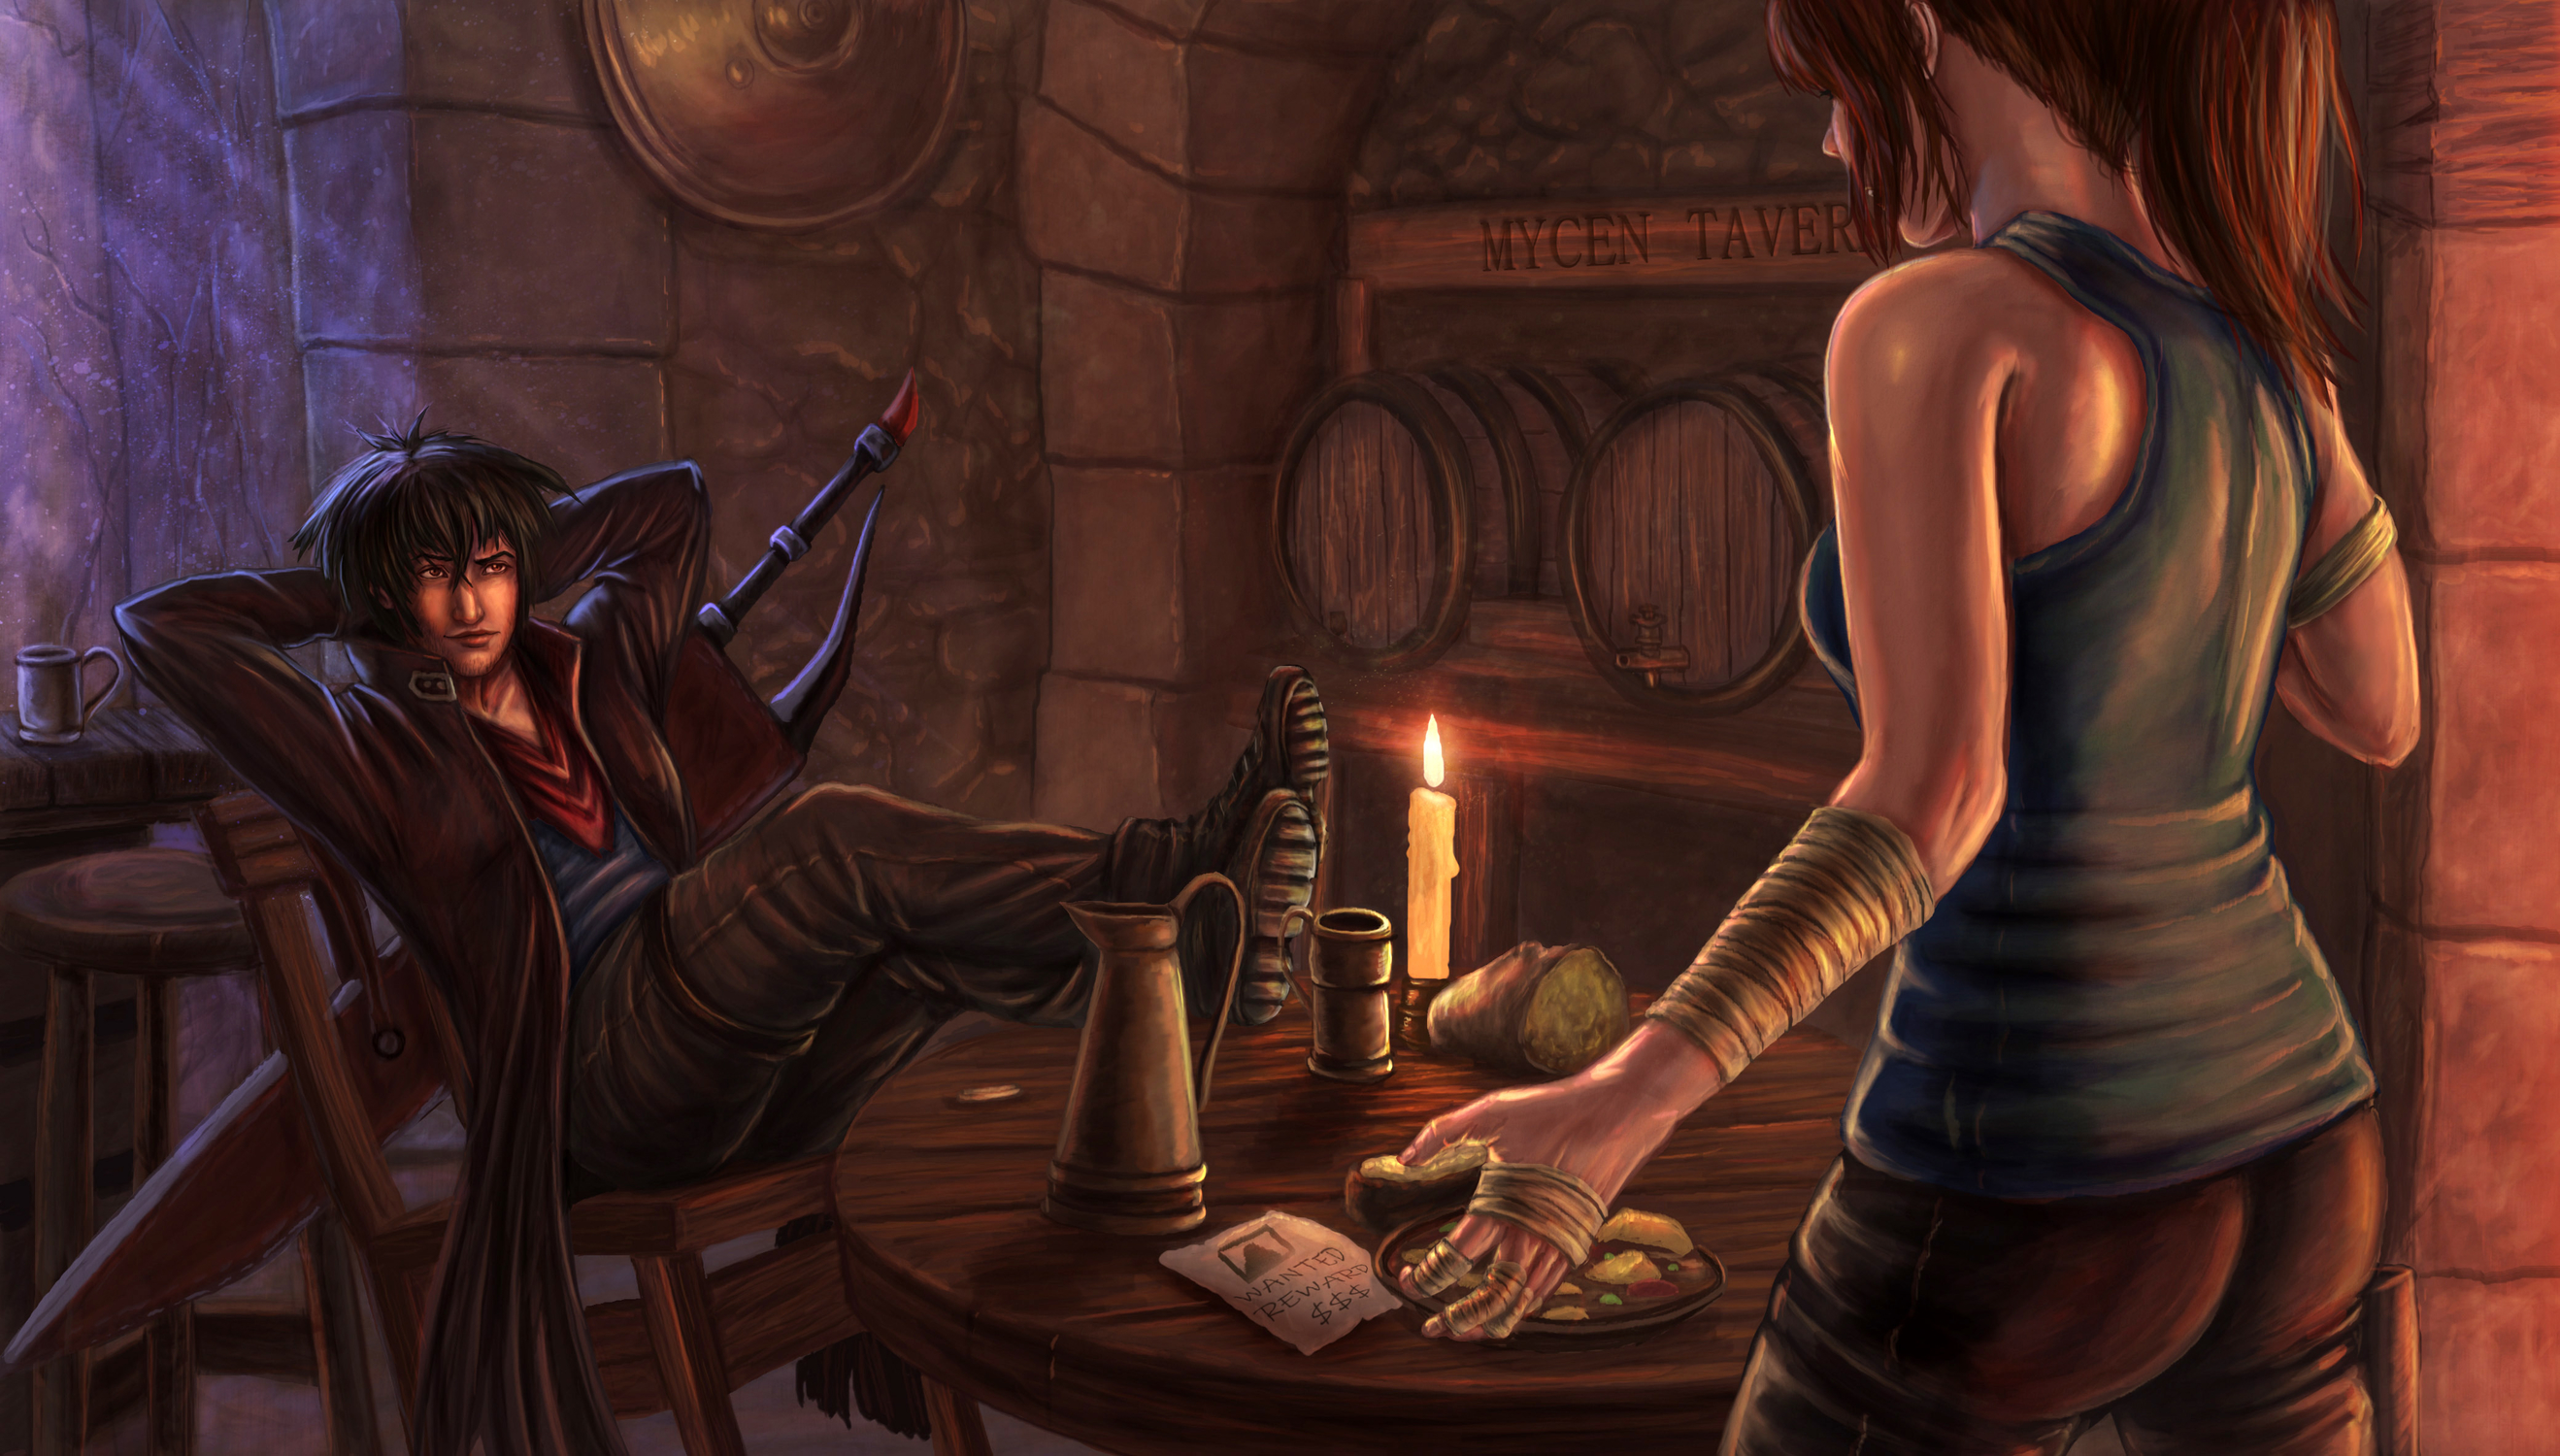 Tavern Argument  Artwork by Zachary Bacus